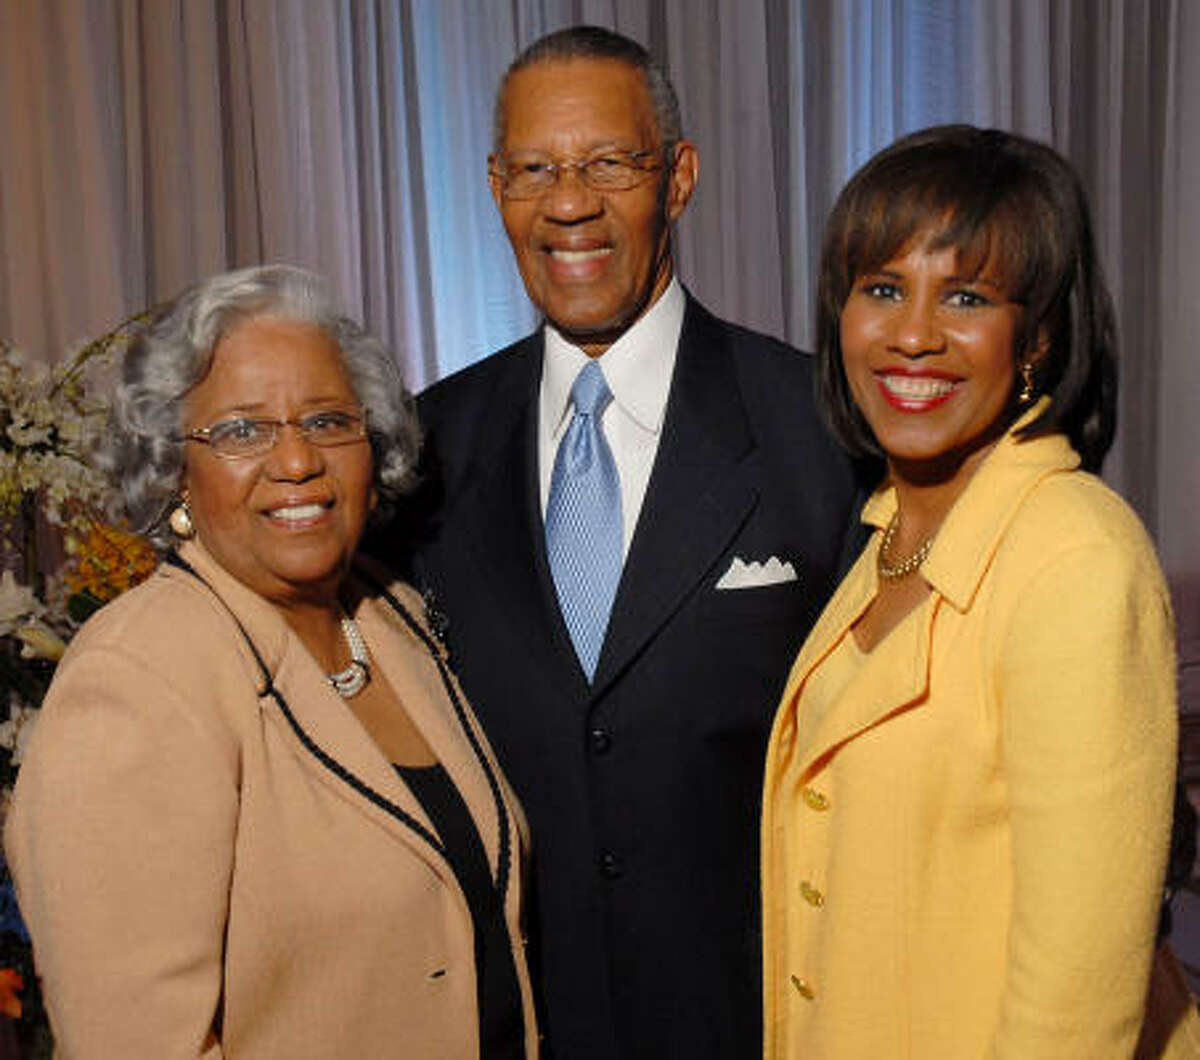 Audrey and the Rev. Bill Lawson with their daughter Melanie Lawson